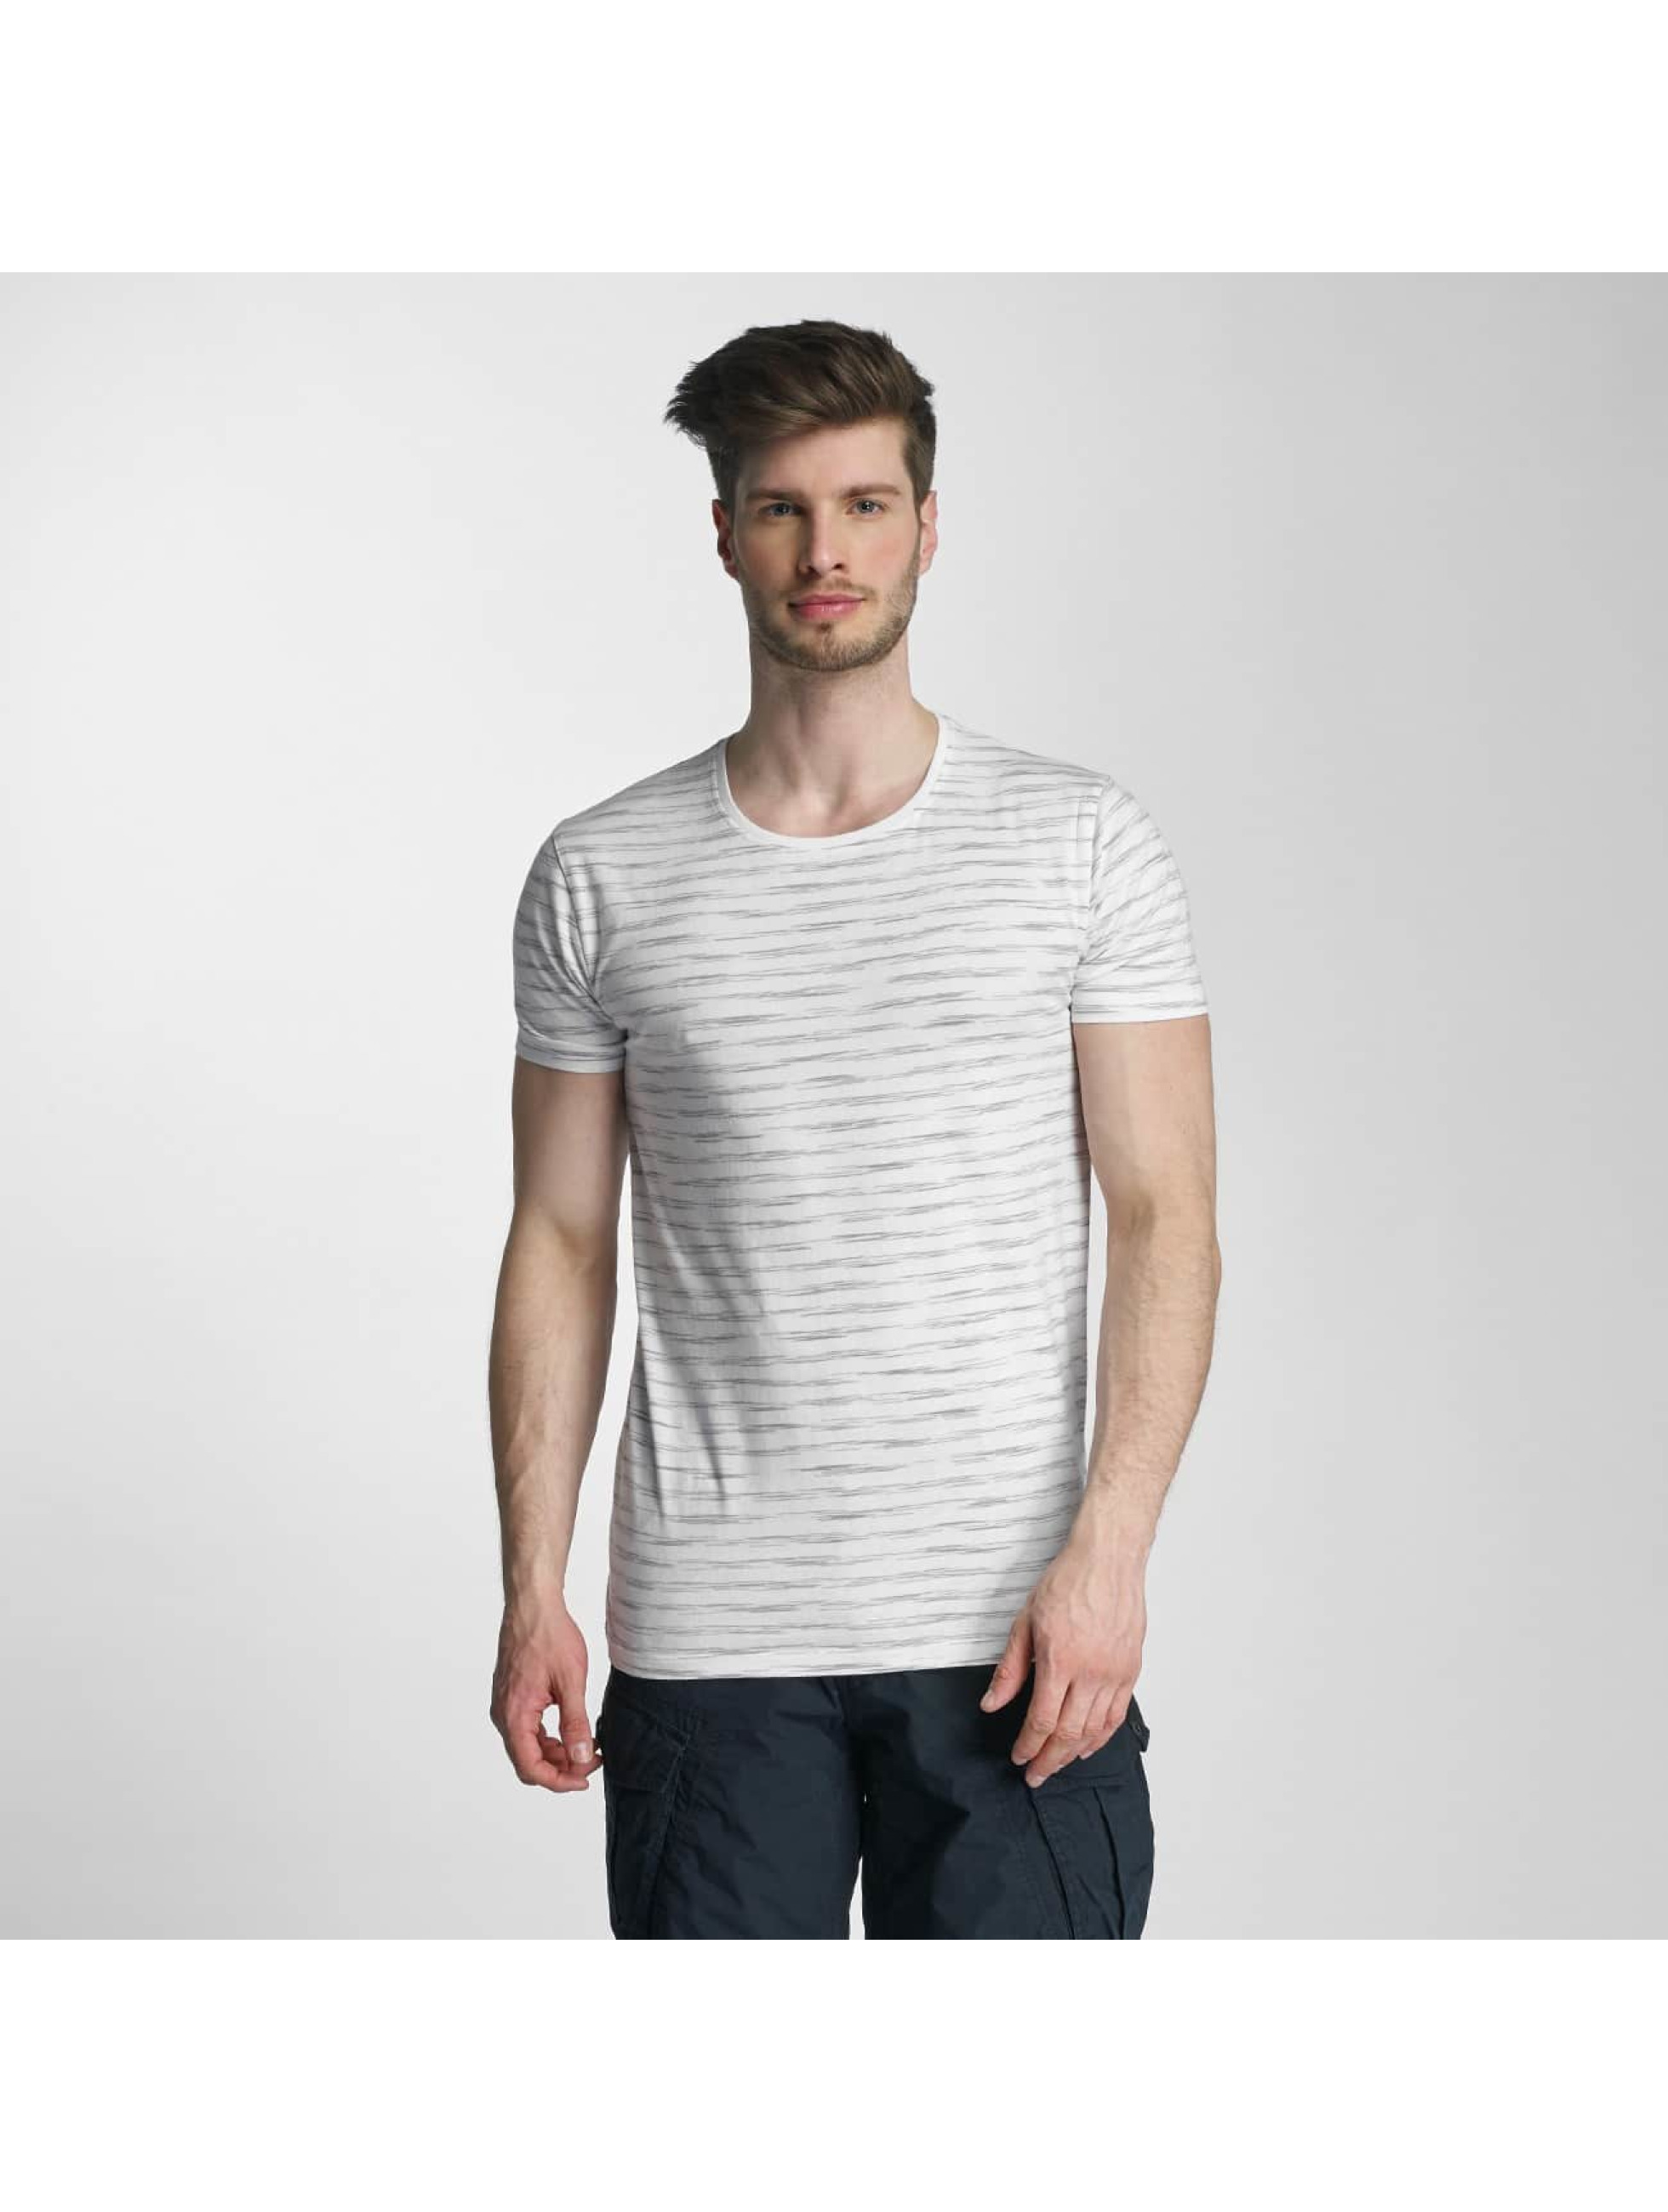 Lindbergh Männer T-Shirt Yarn Dyed Striped in grau